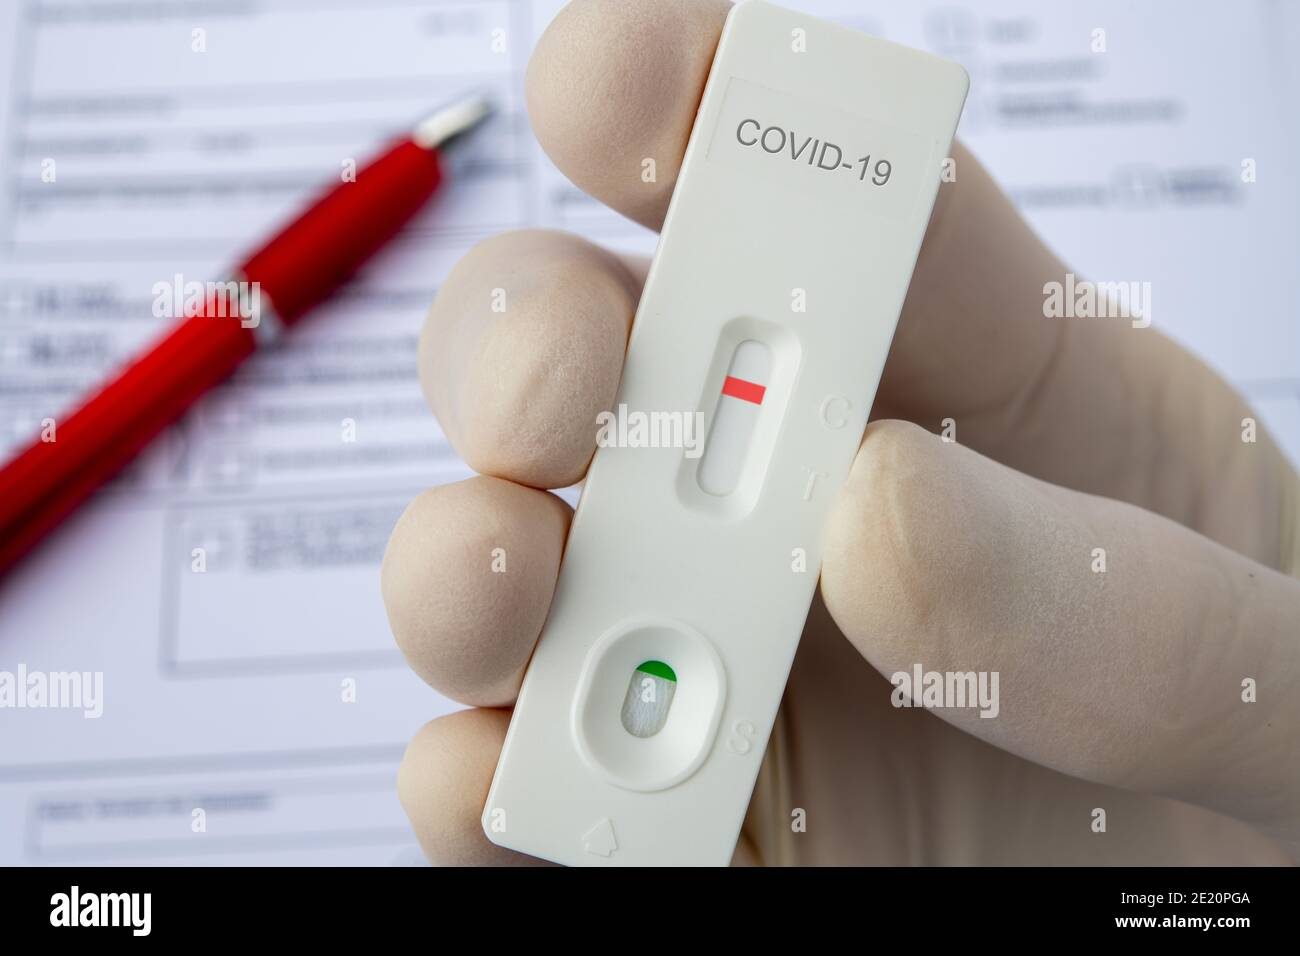 Covid-19, hand in glove and test sticks Stock Photo